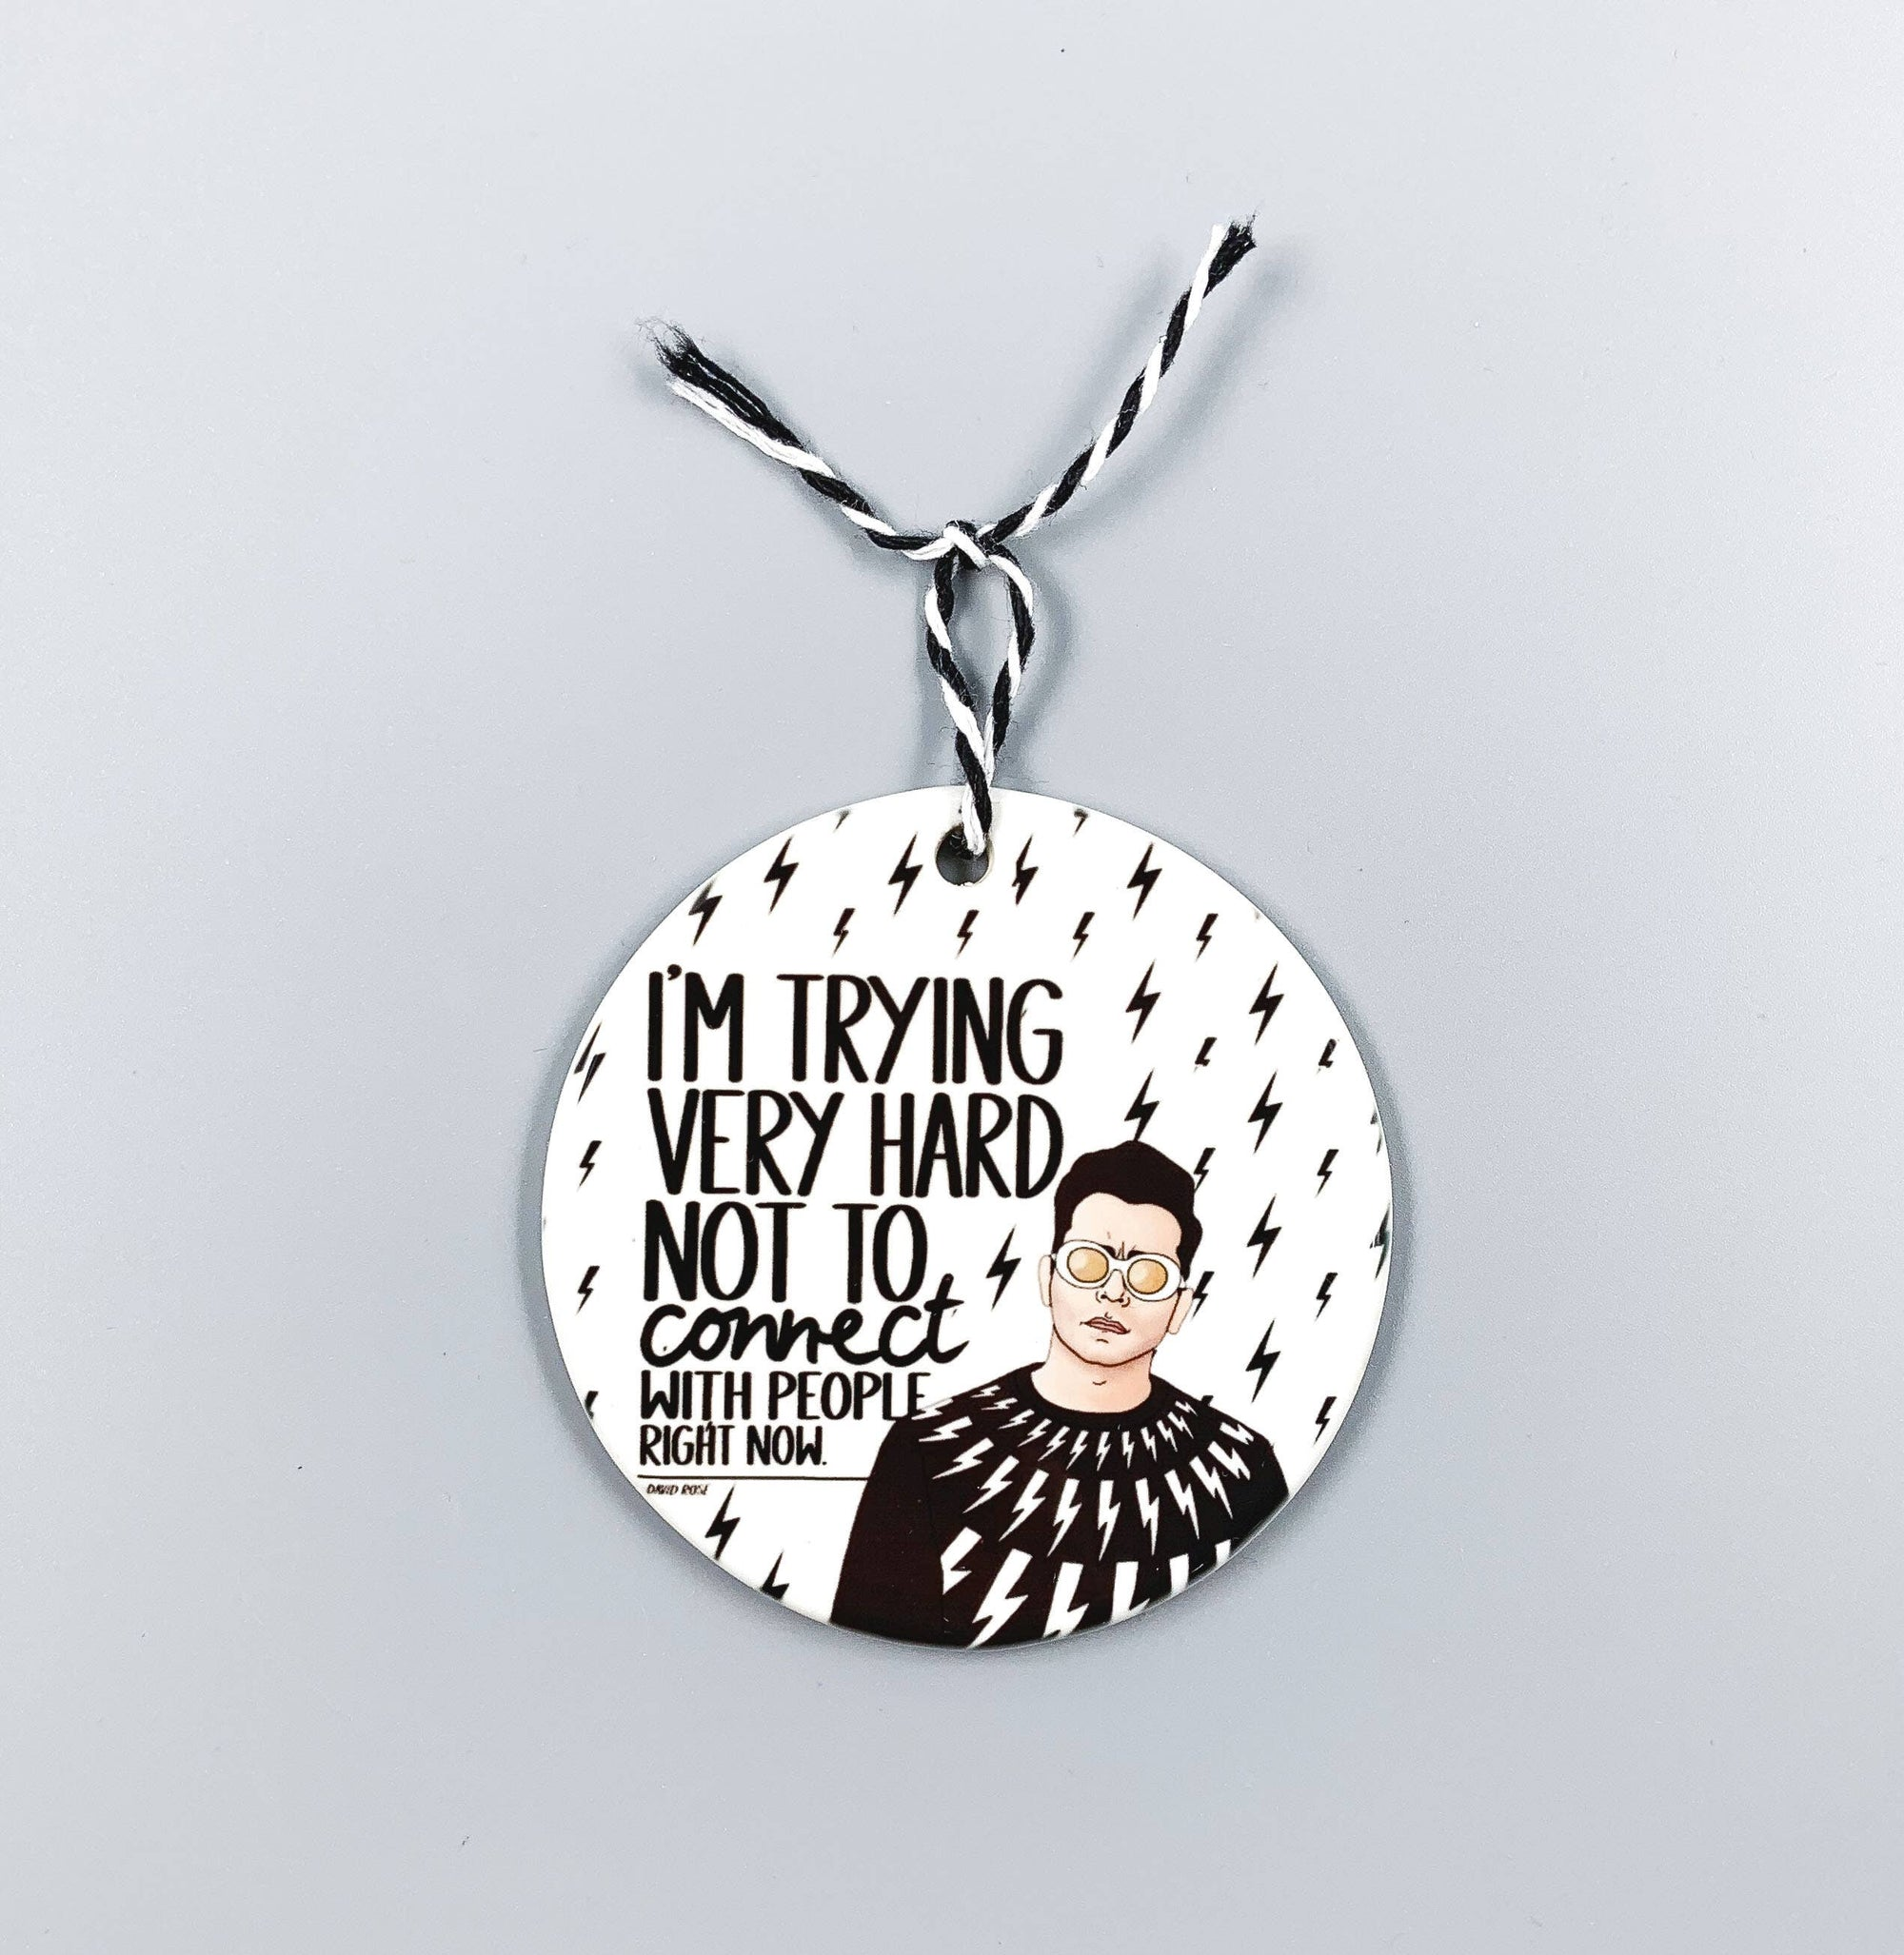 Citizen Ruth: Schitt's Creek David Ornament